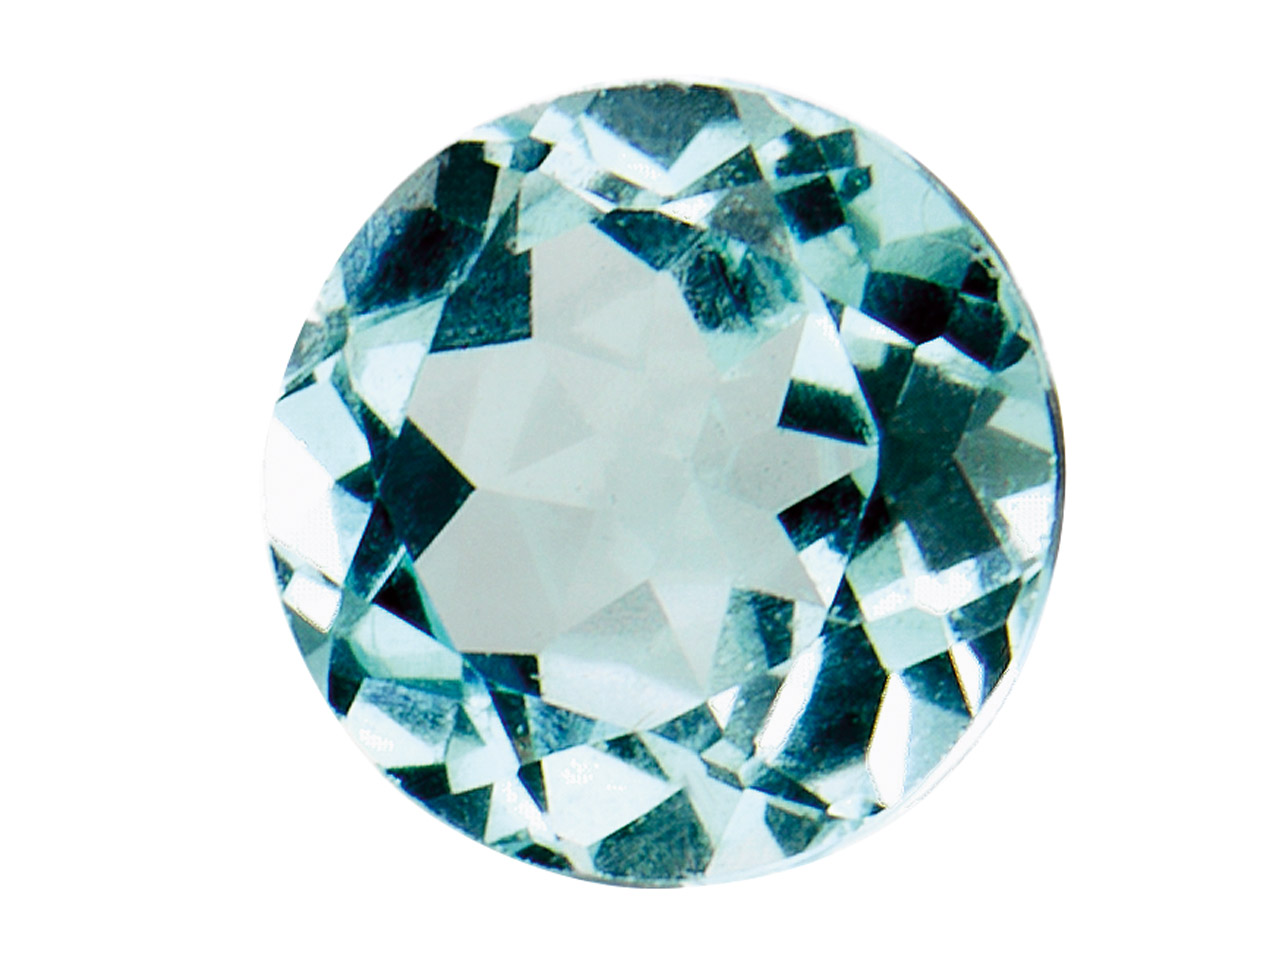 Sky Blue Topaz, Round, 4mm, Treated